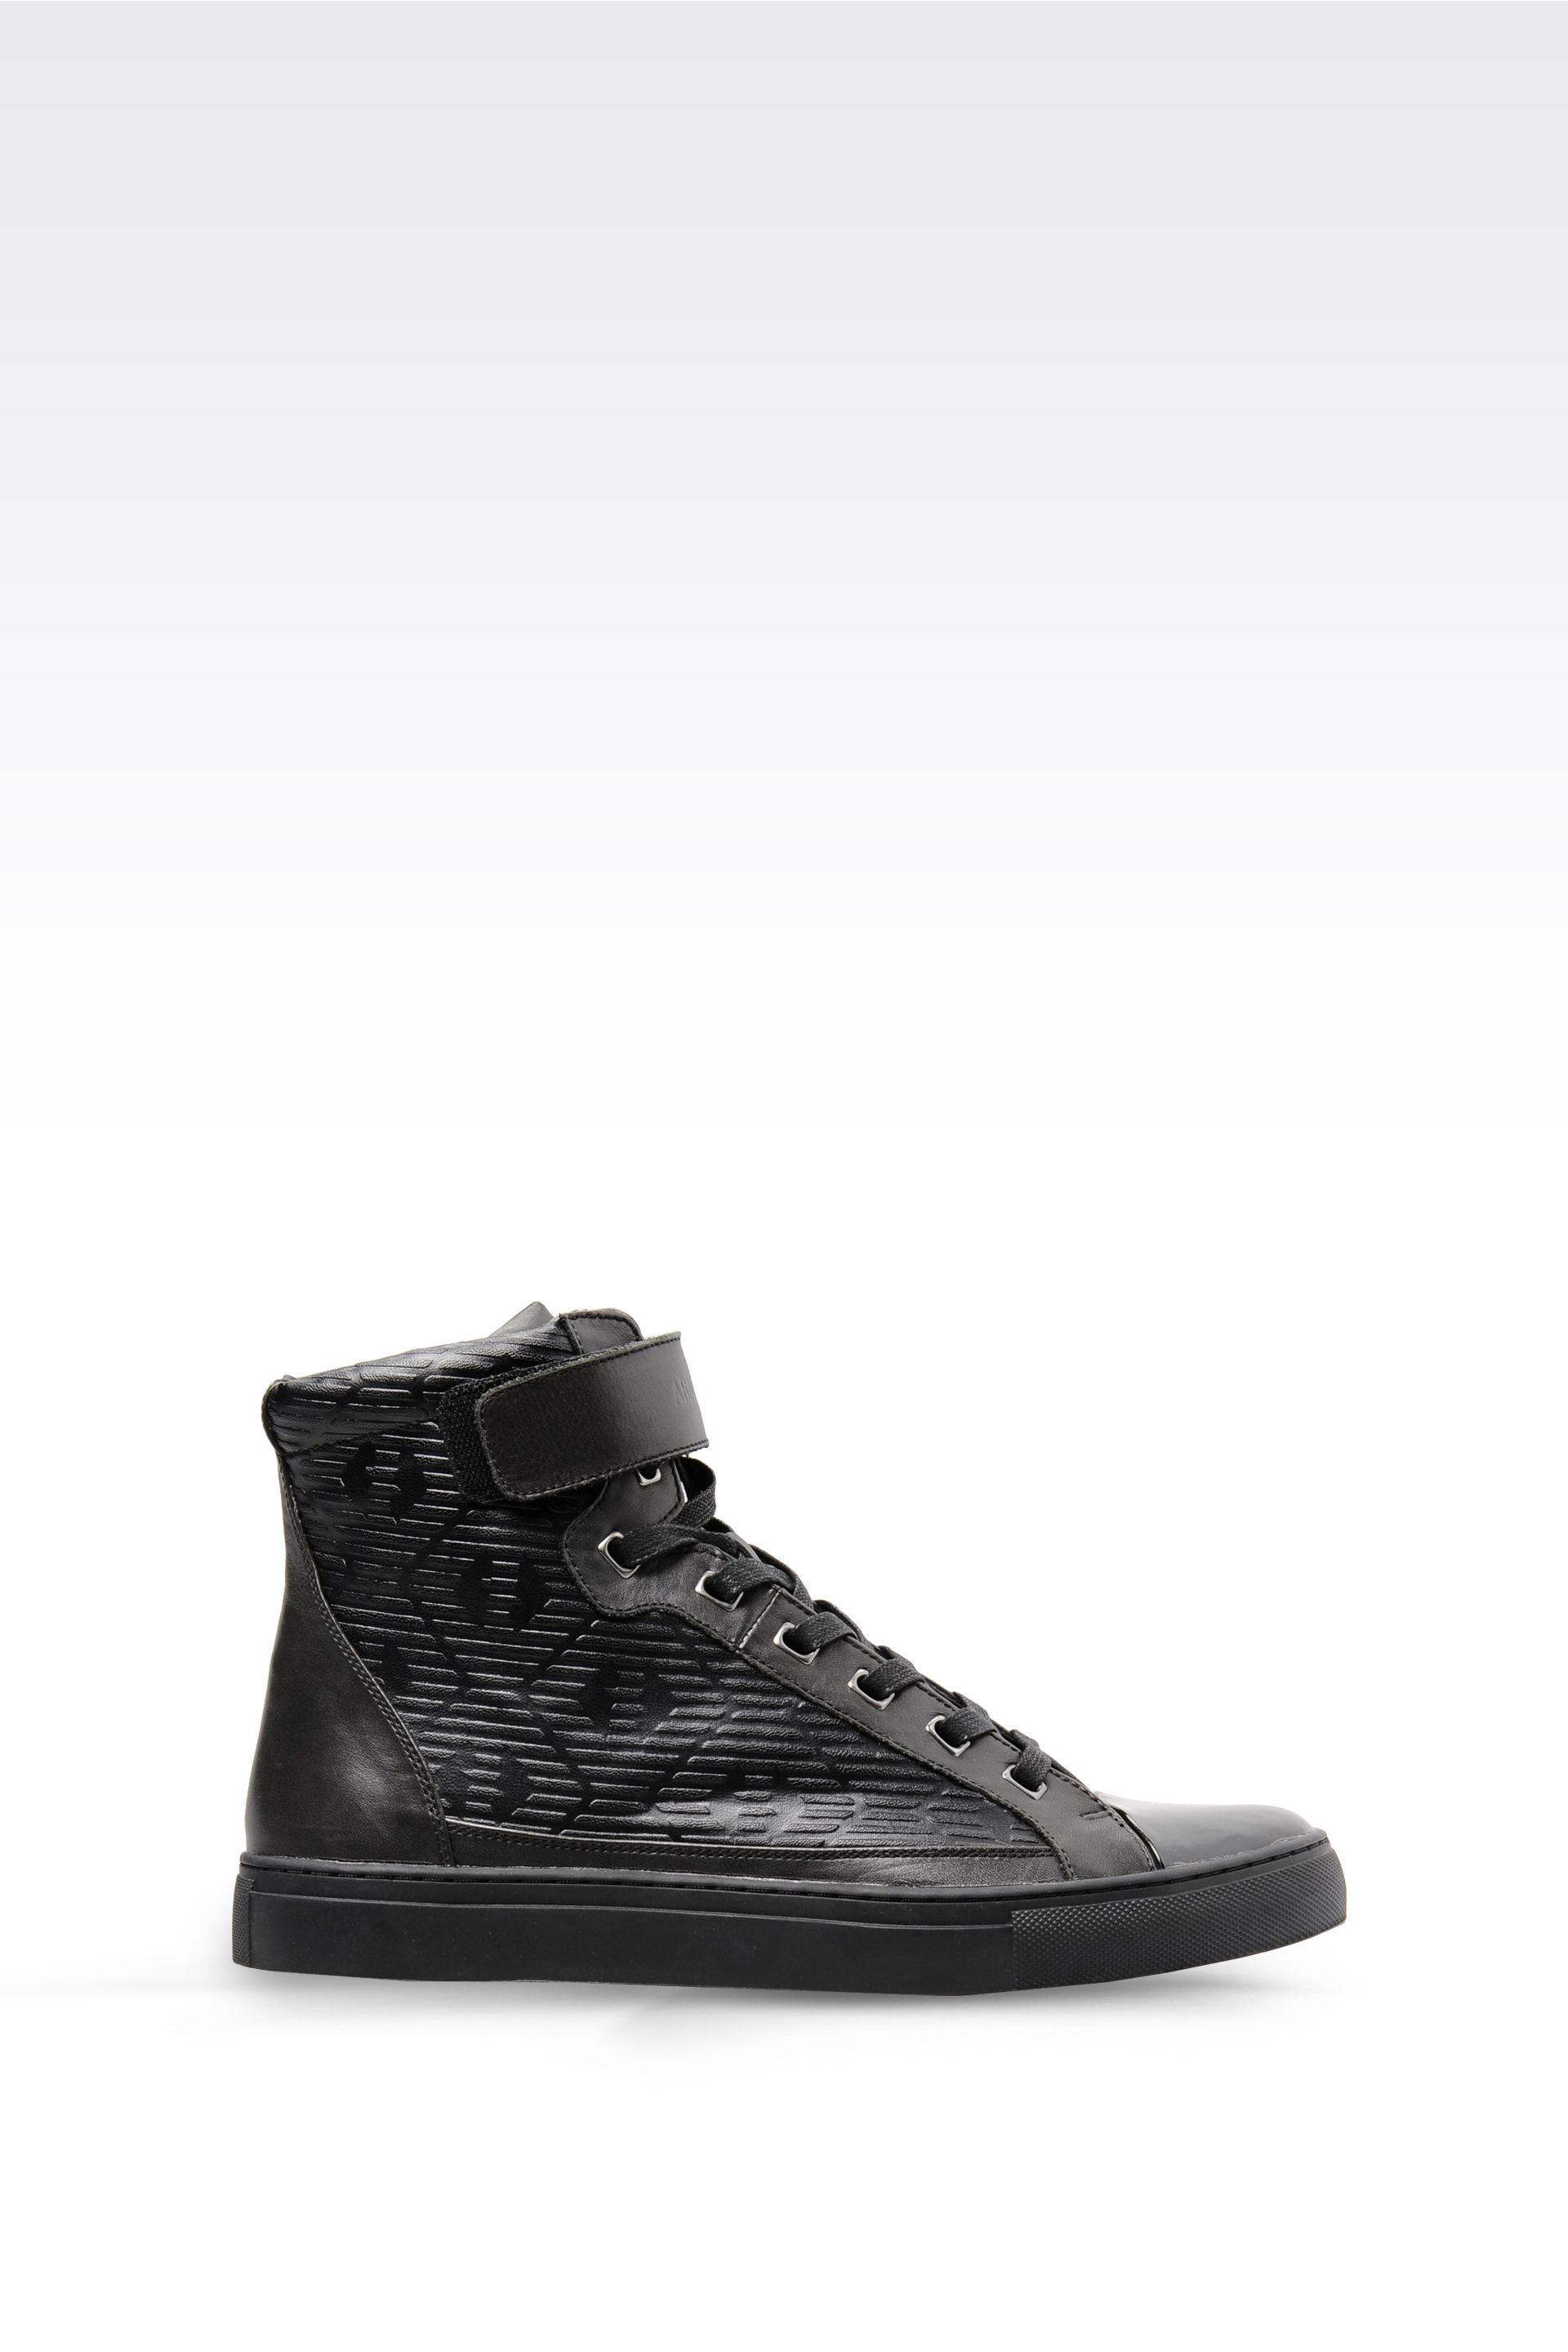 armani jeans high top sneaker in leather and patent in black for men lyst. Black Bedroom Furniture Sets. Home Design Ideas